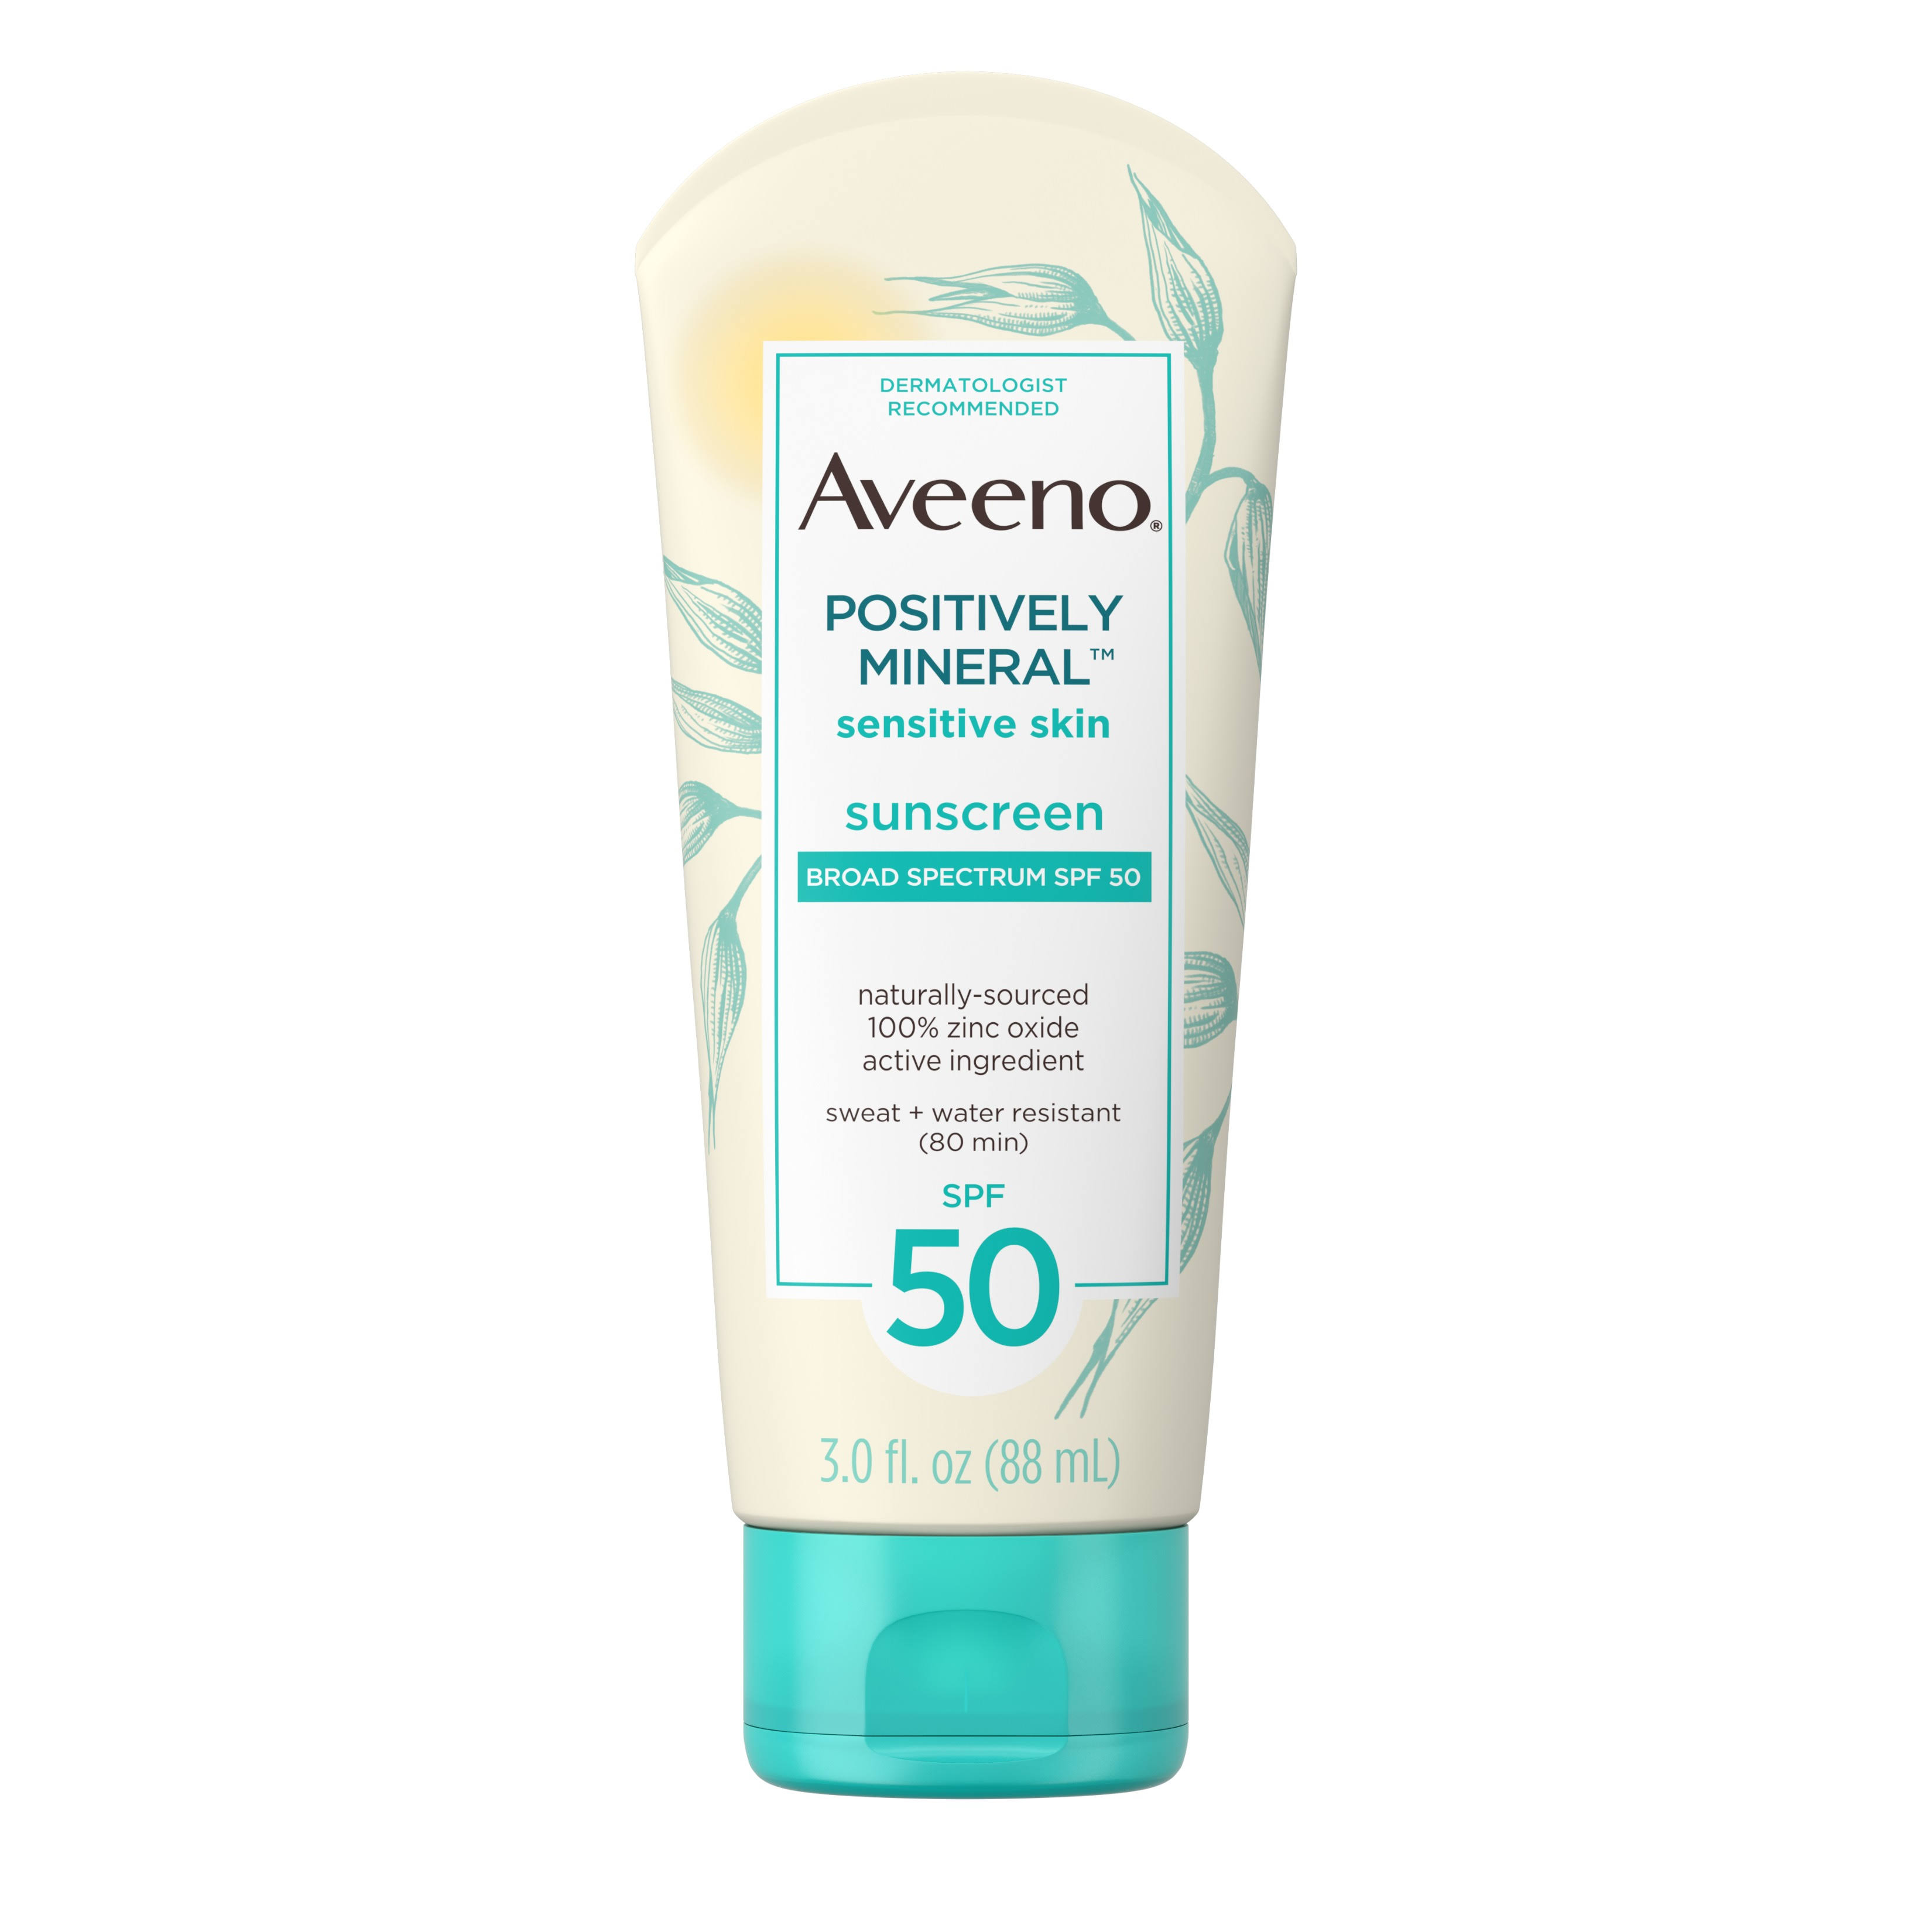 Aveeno Positively Mineral Sunscreen, Broad Spectrum SPF 50 - 3.0 fl oz